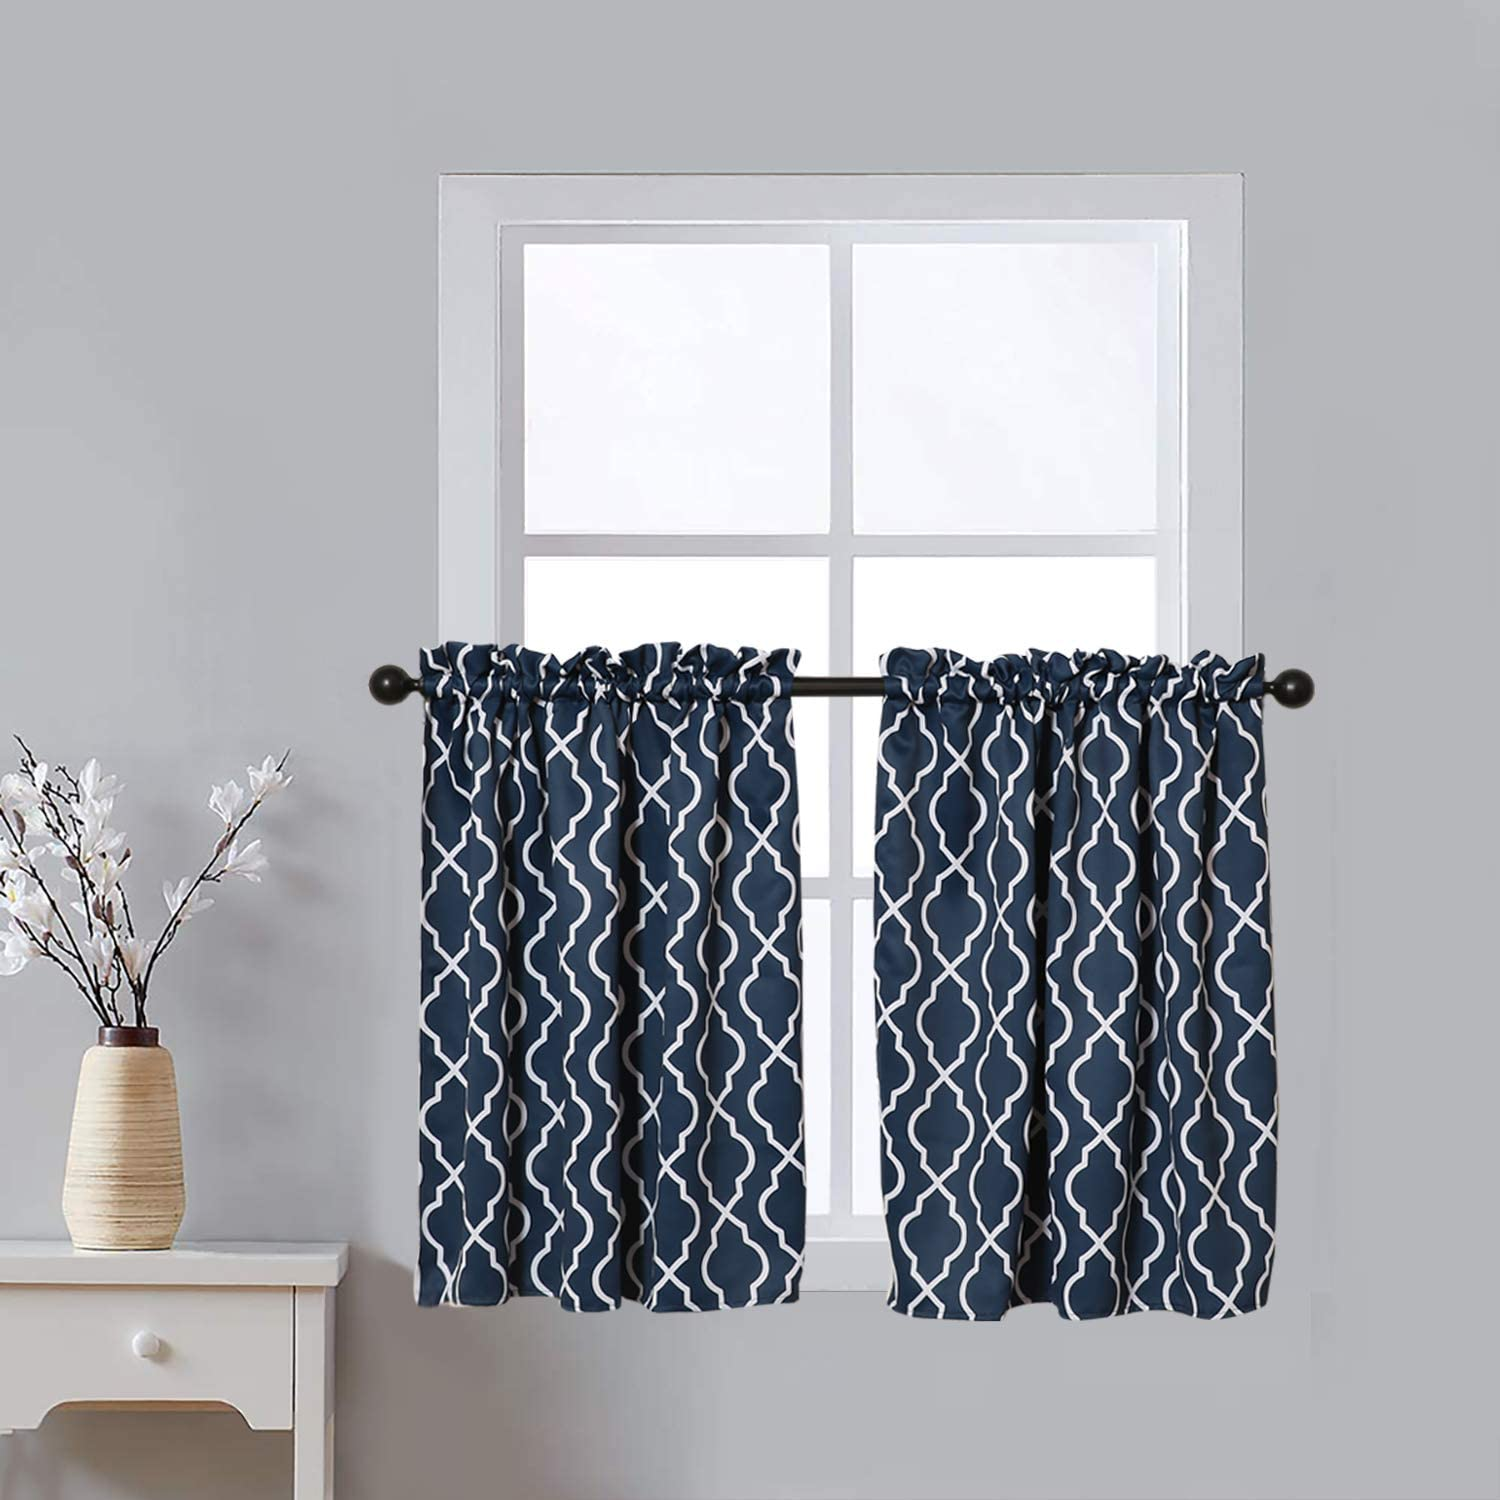 SquarePie New Free Shipping gift Curtain Tiers Moroccan Tile Print Window Blackout Trea